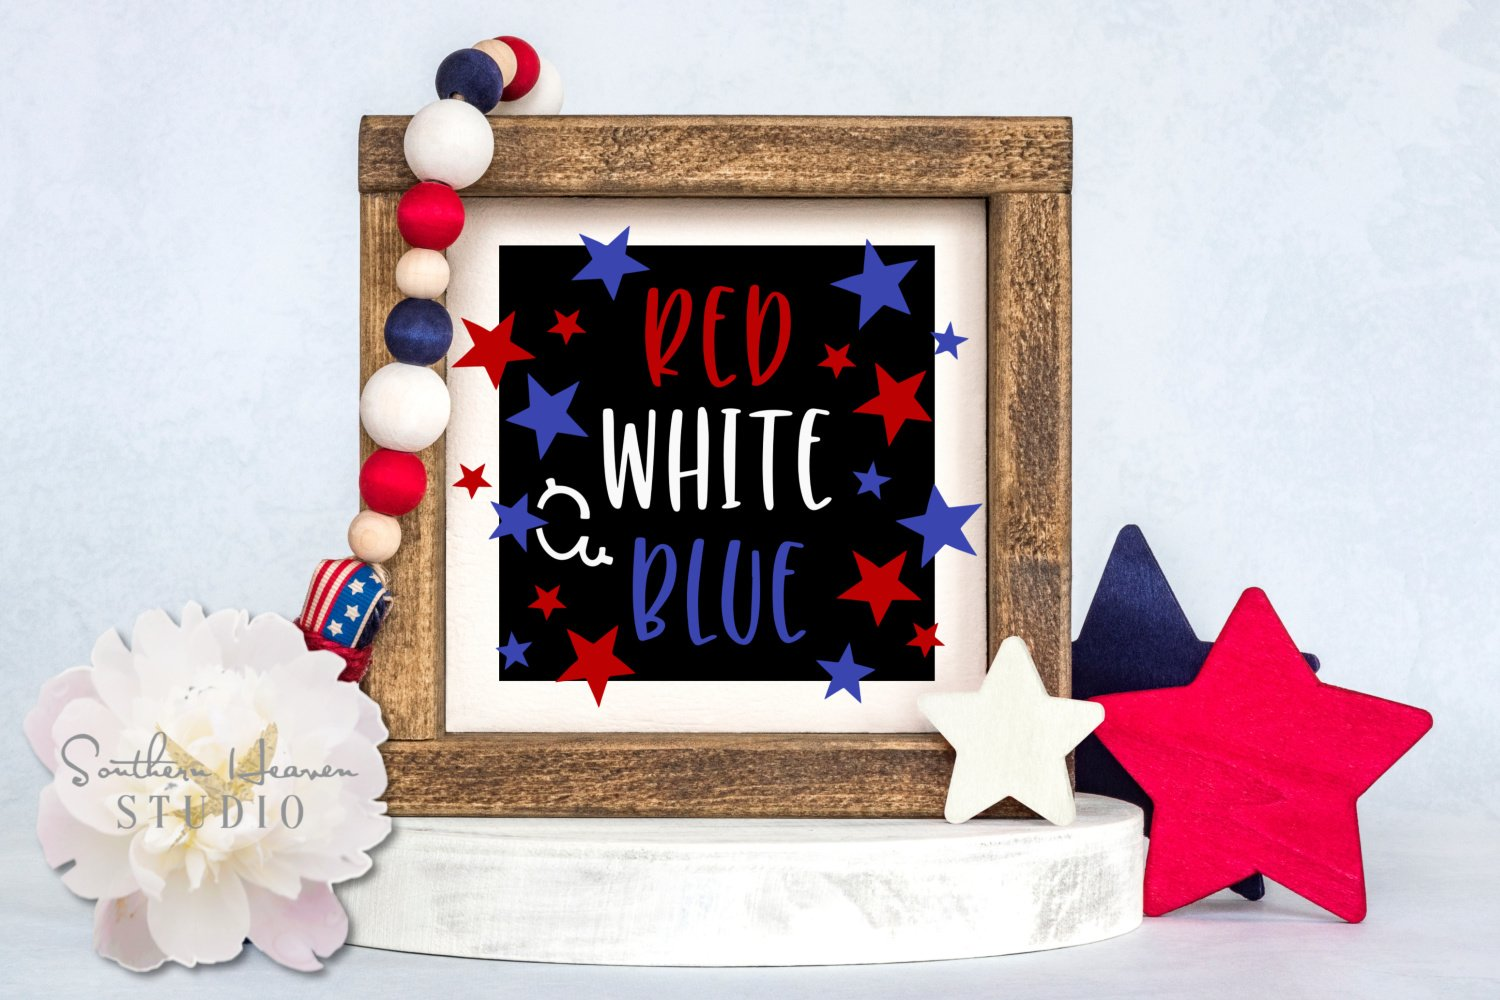 RED, WHITE & BLUE - SVG, PNG, DXF and EPS example image 1